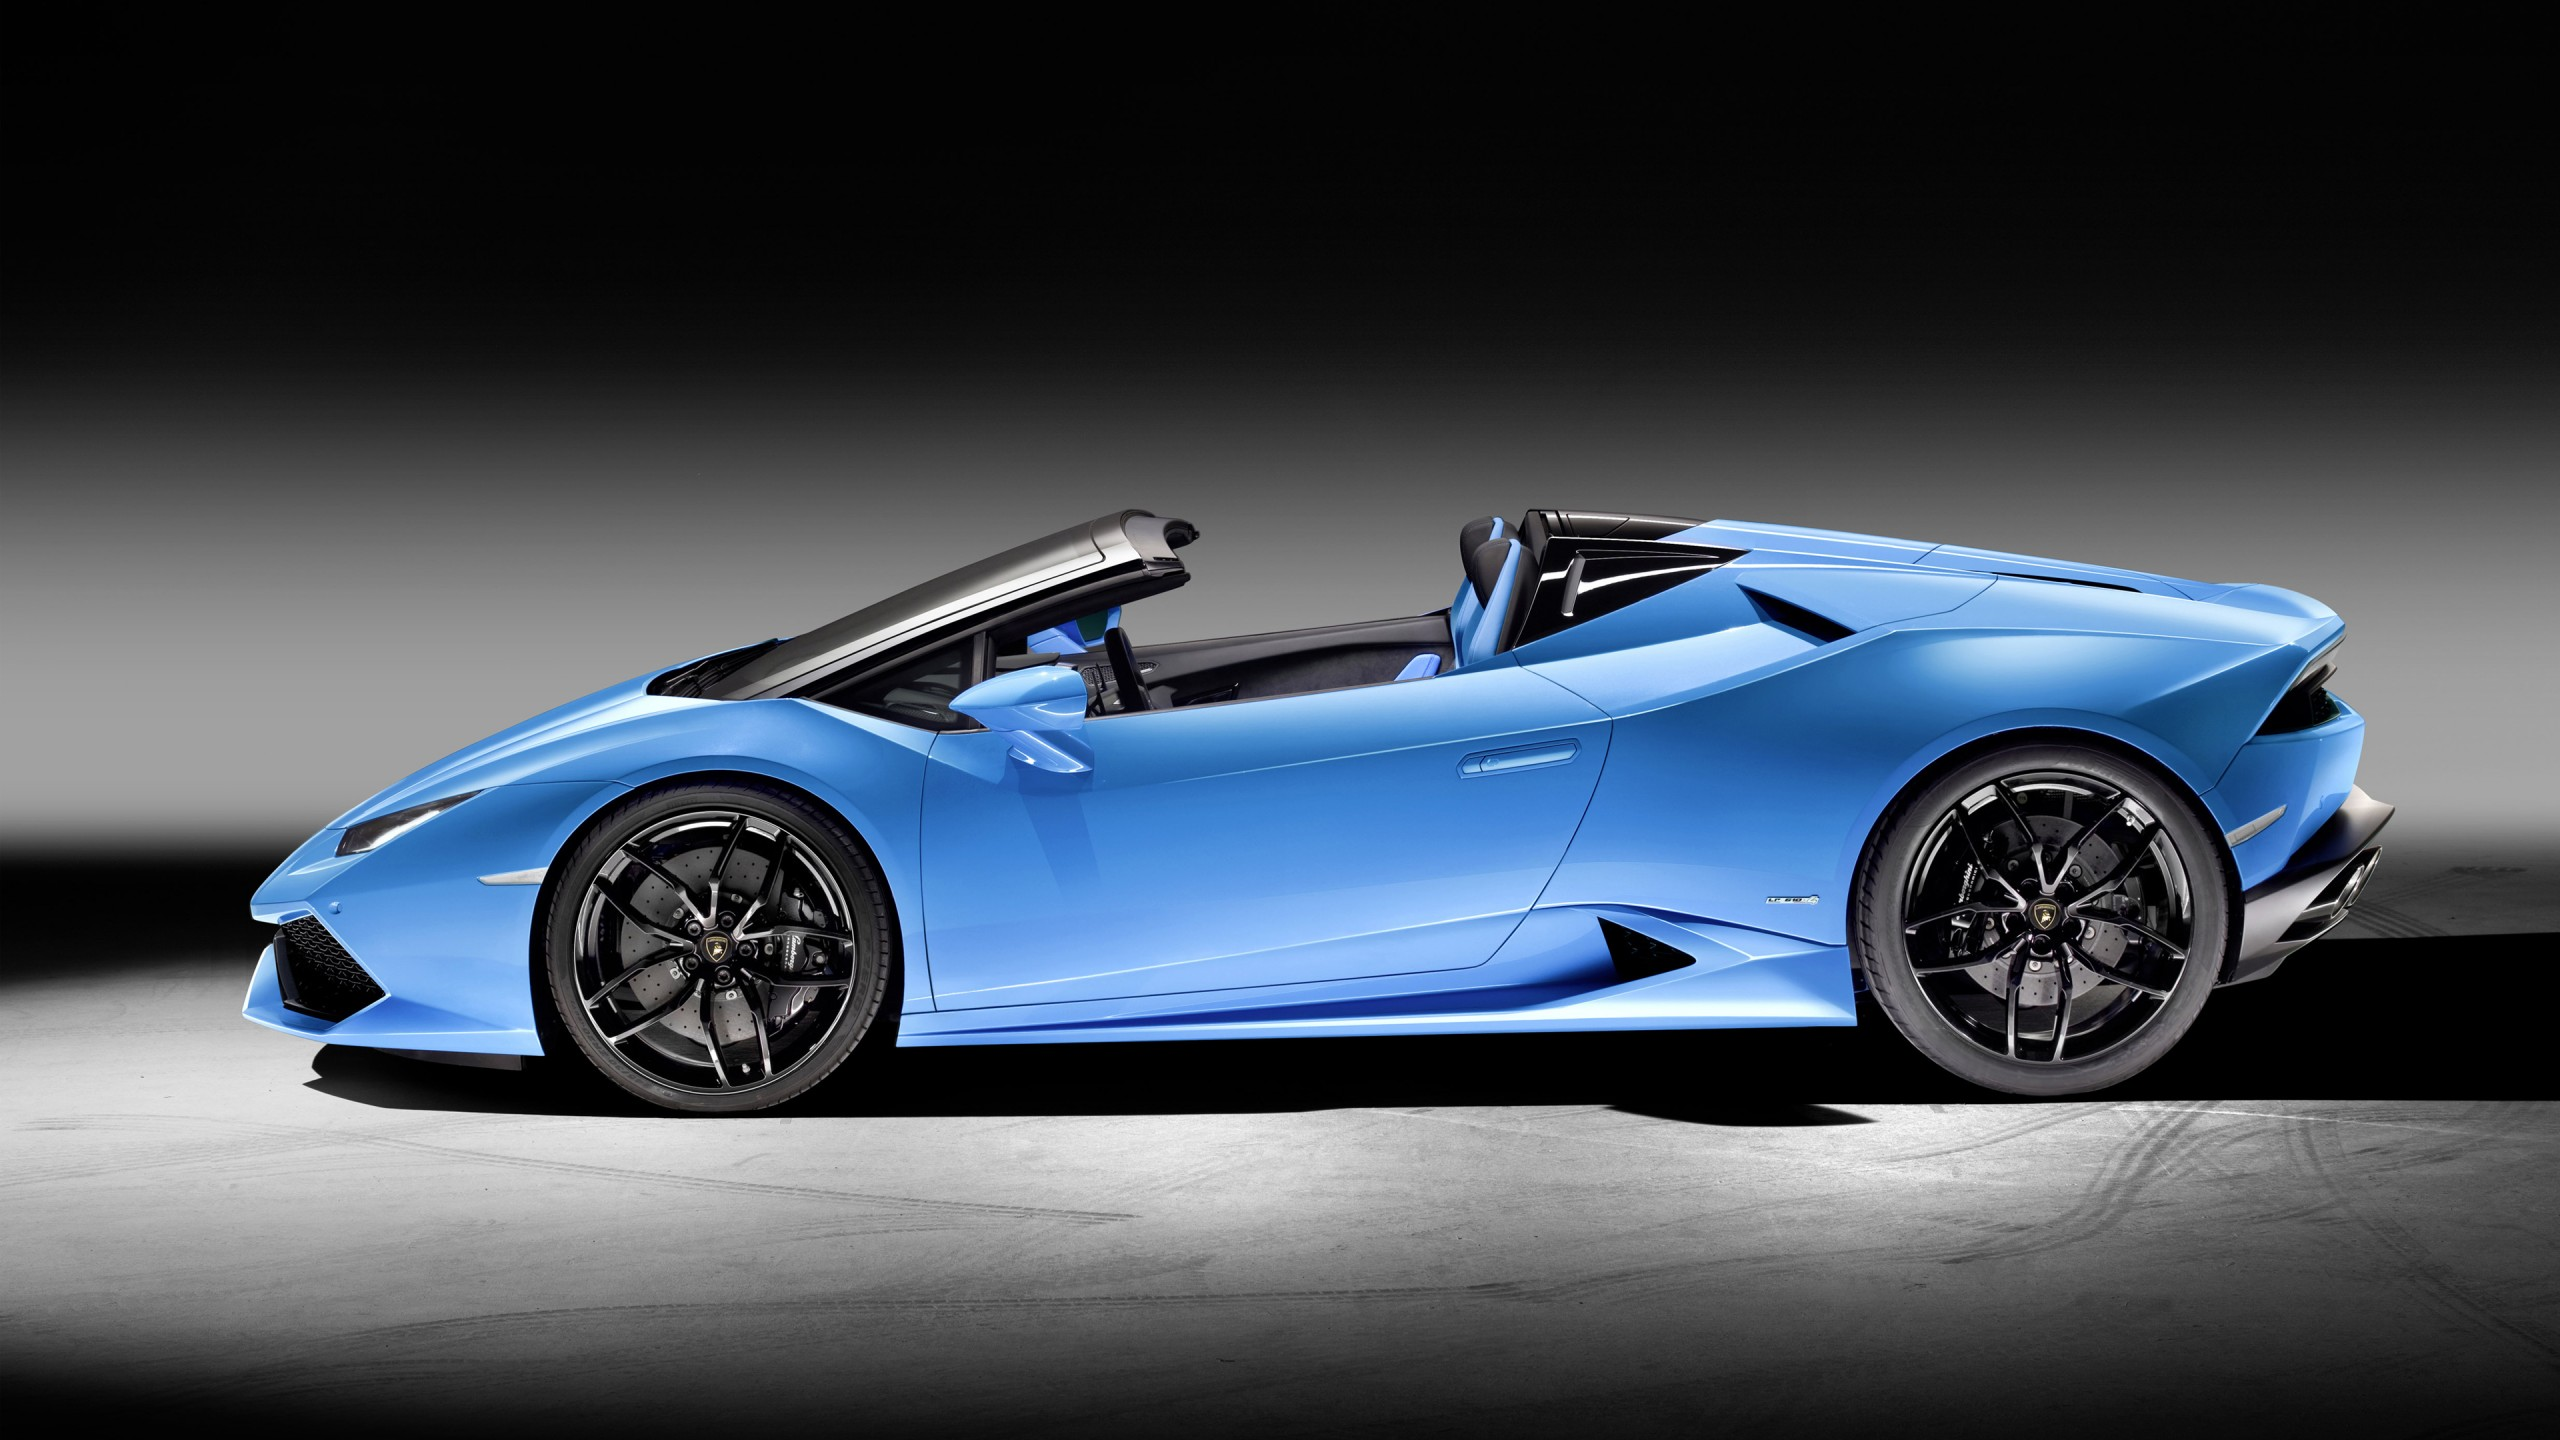 2016 lamborghini huracan lp 610 4 spyder 3 wallpaper hd car wallpapers. Black Bedroom Furniture Sets. Home Design Ideas